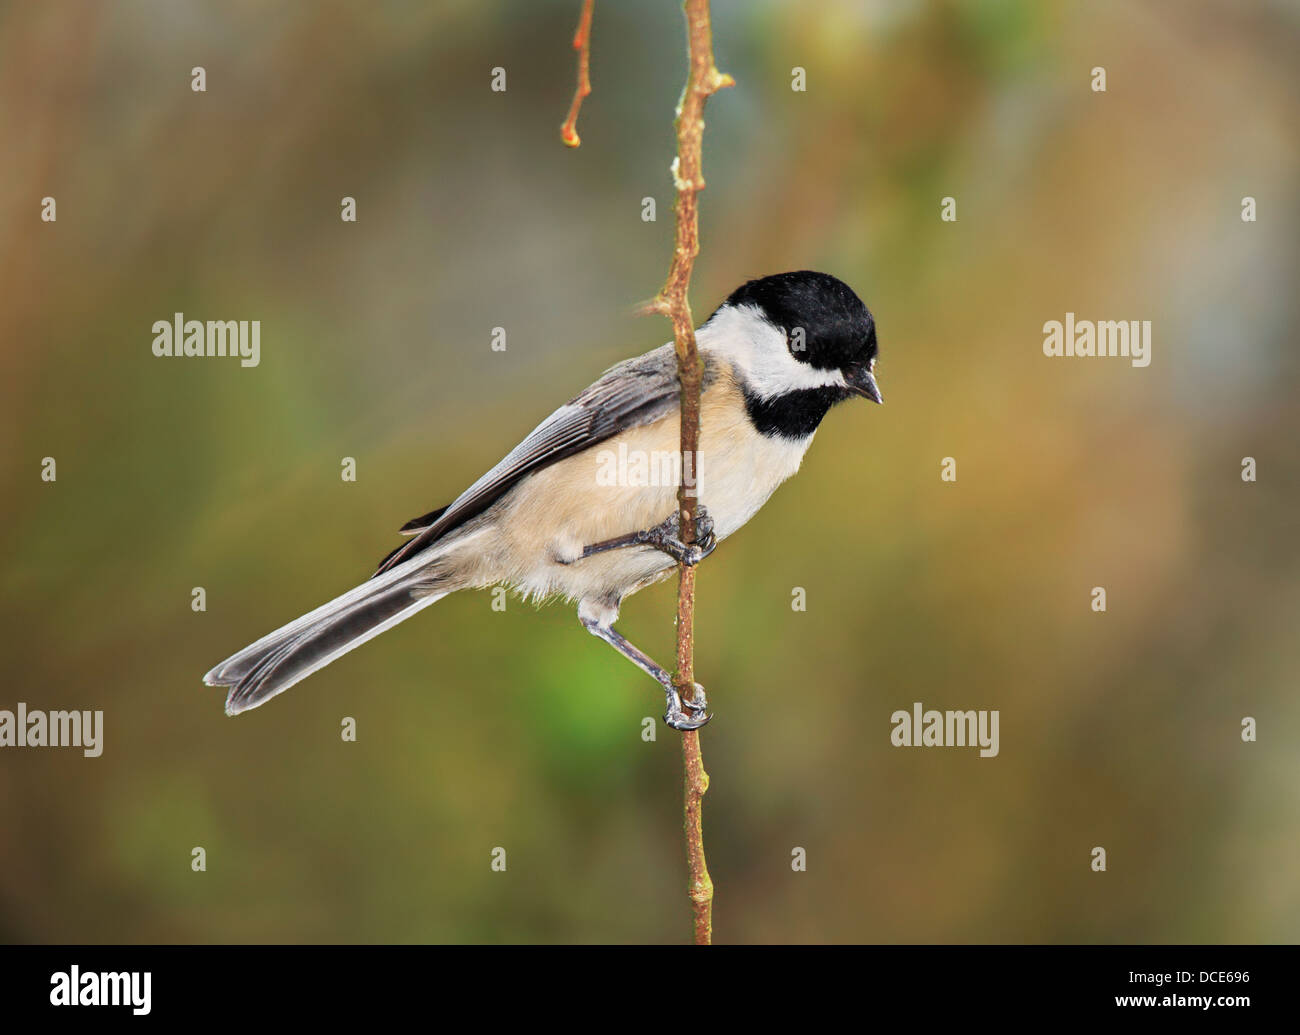 A Small Bird, The Carolina Chickadee Against A Colorful Spring Background, Poecile carolinensis, Posing Nicely - Stock Image